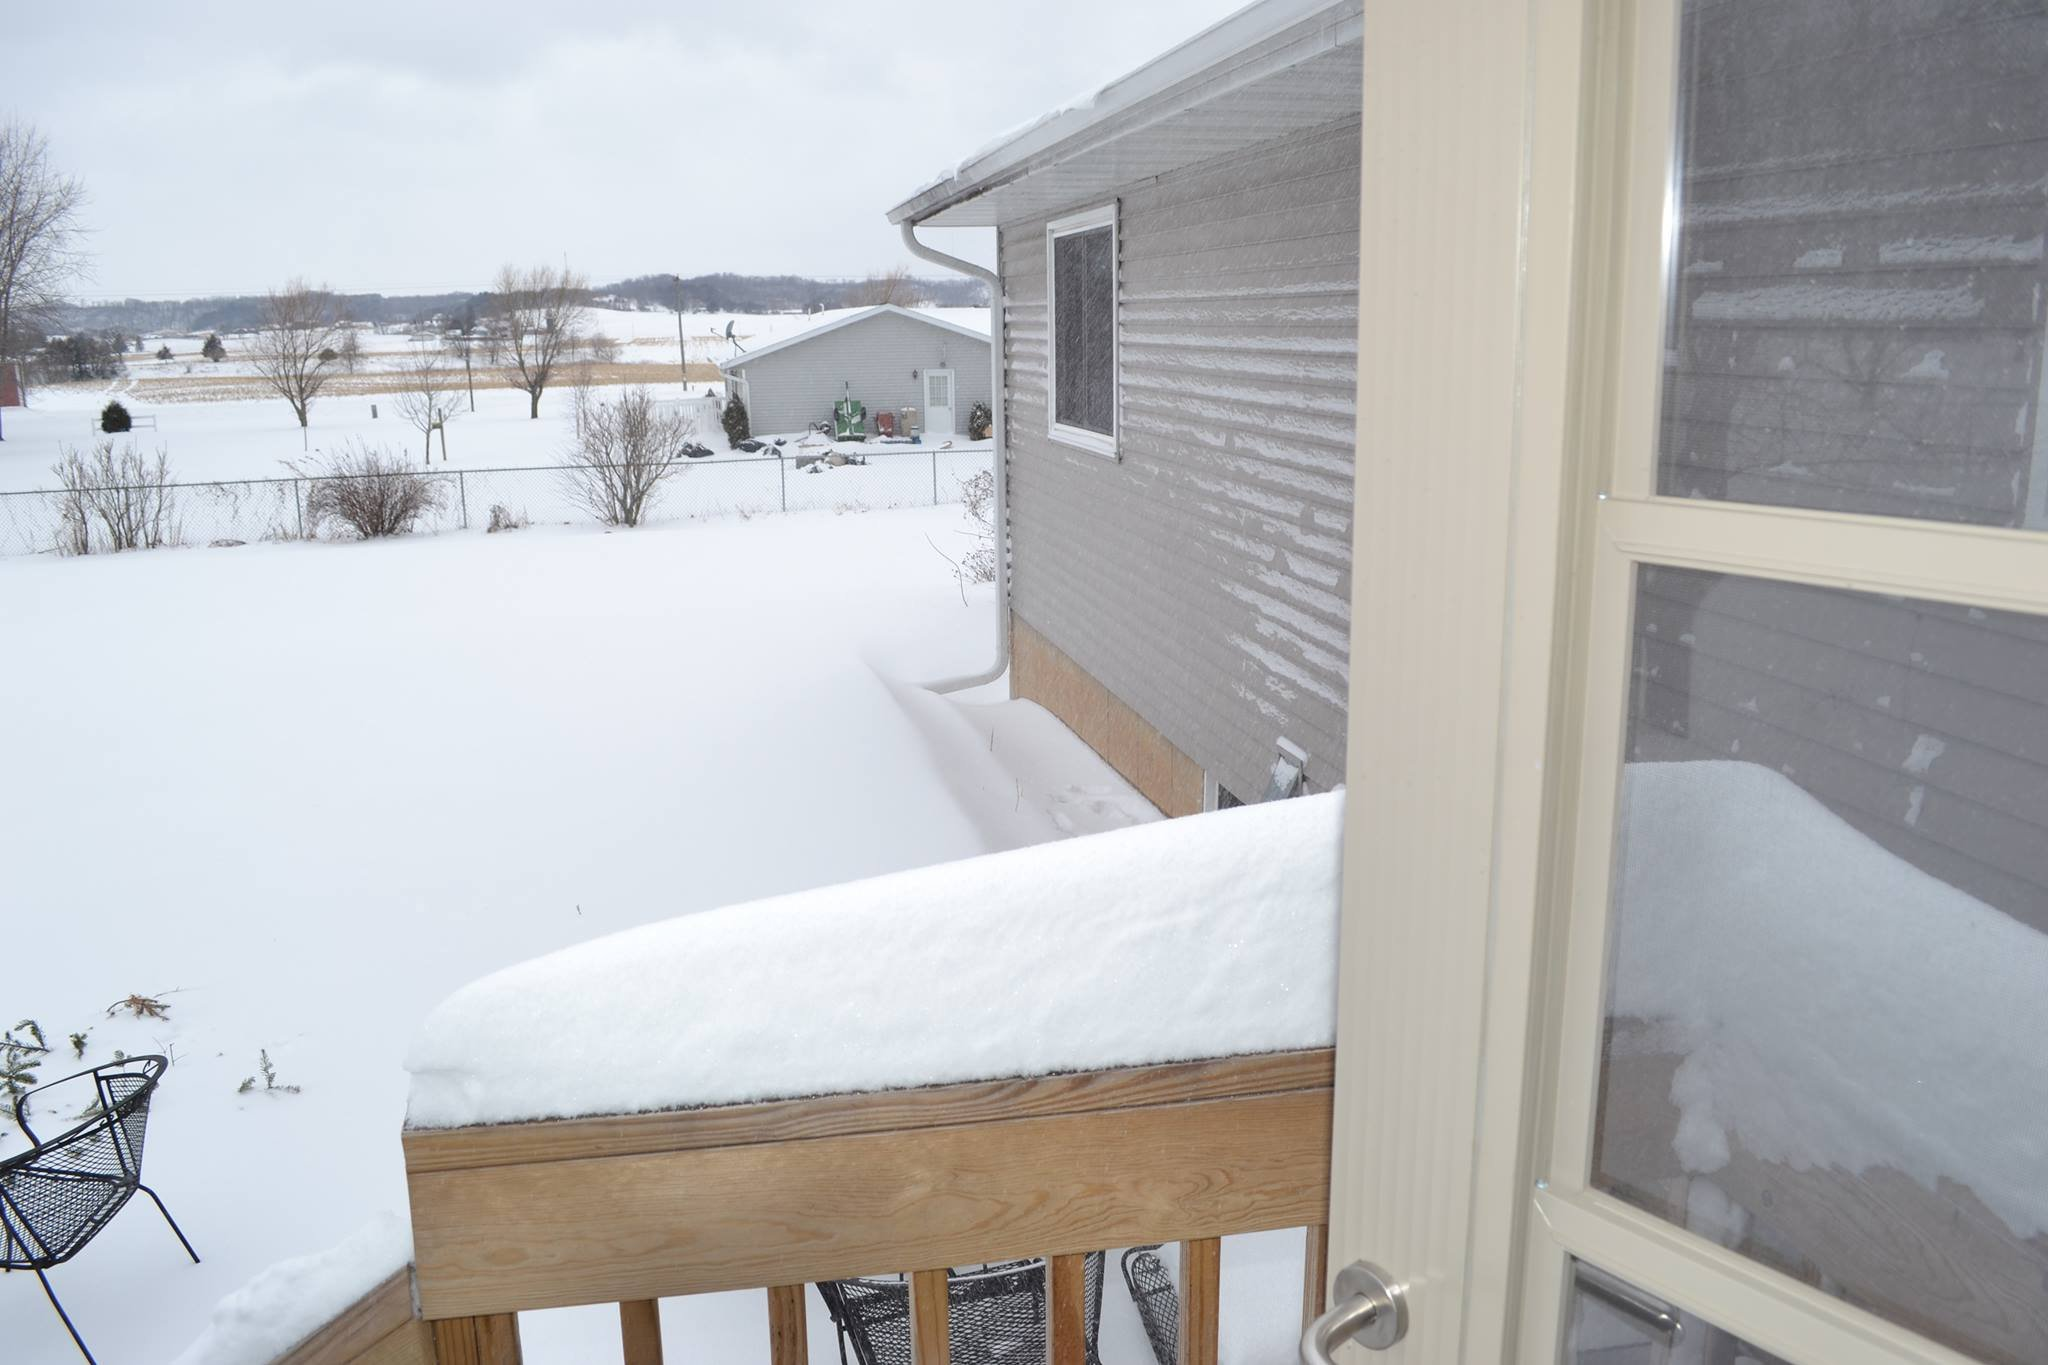 Photo from Iris Kowalewski of the snow in Sparta. They got a little over 7 inches.